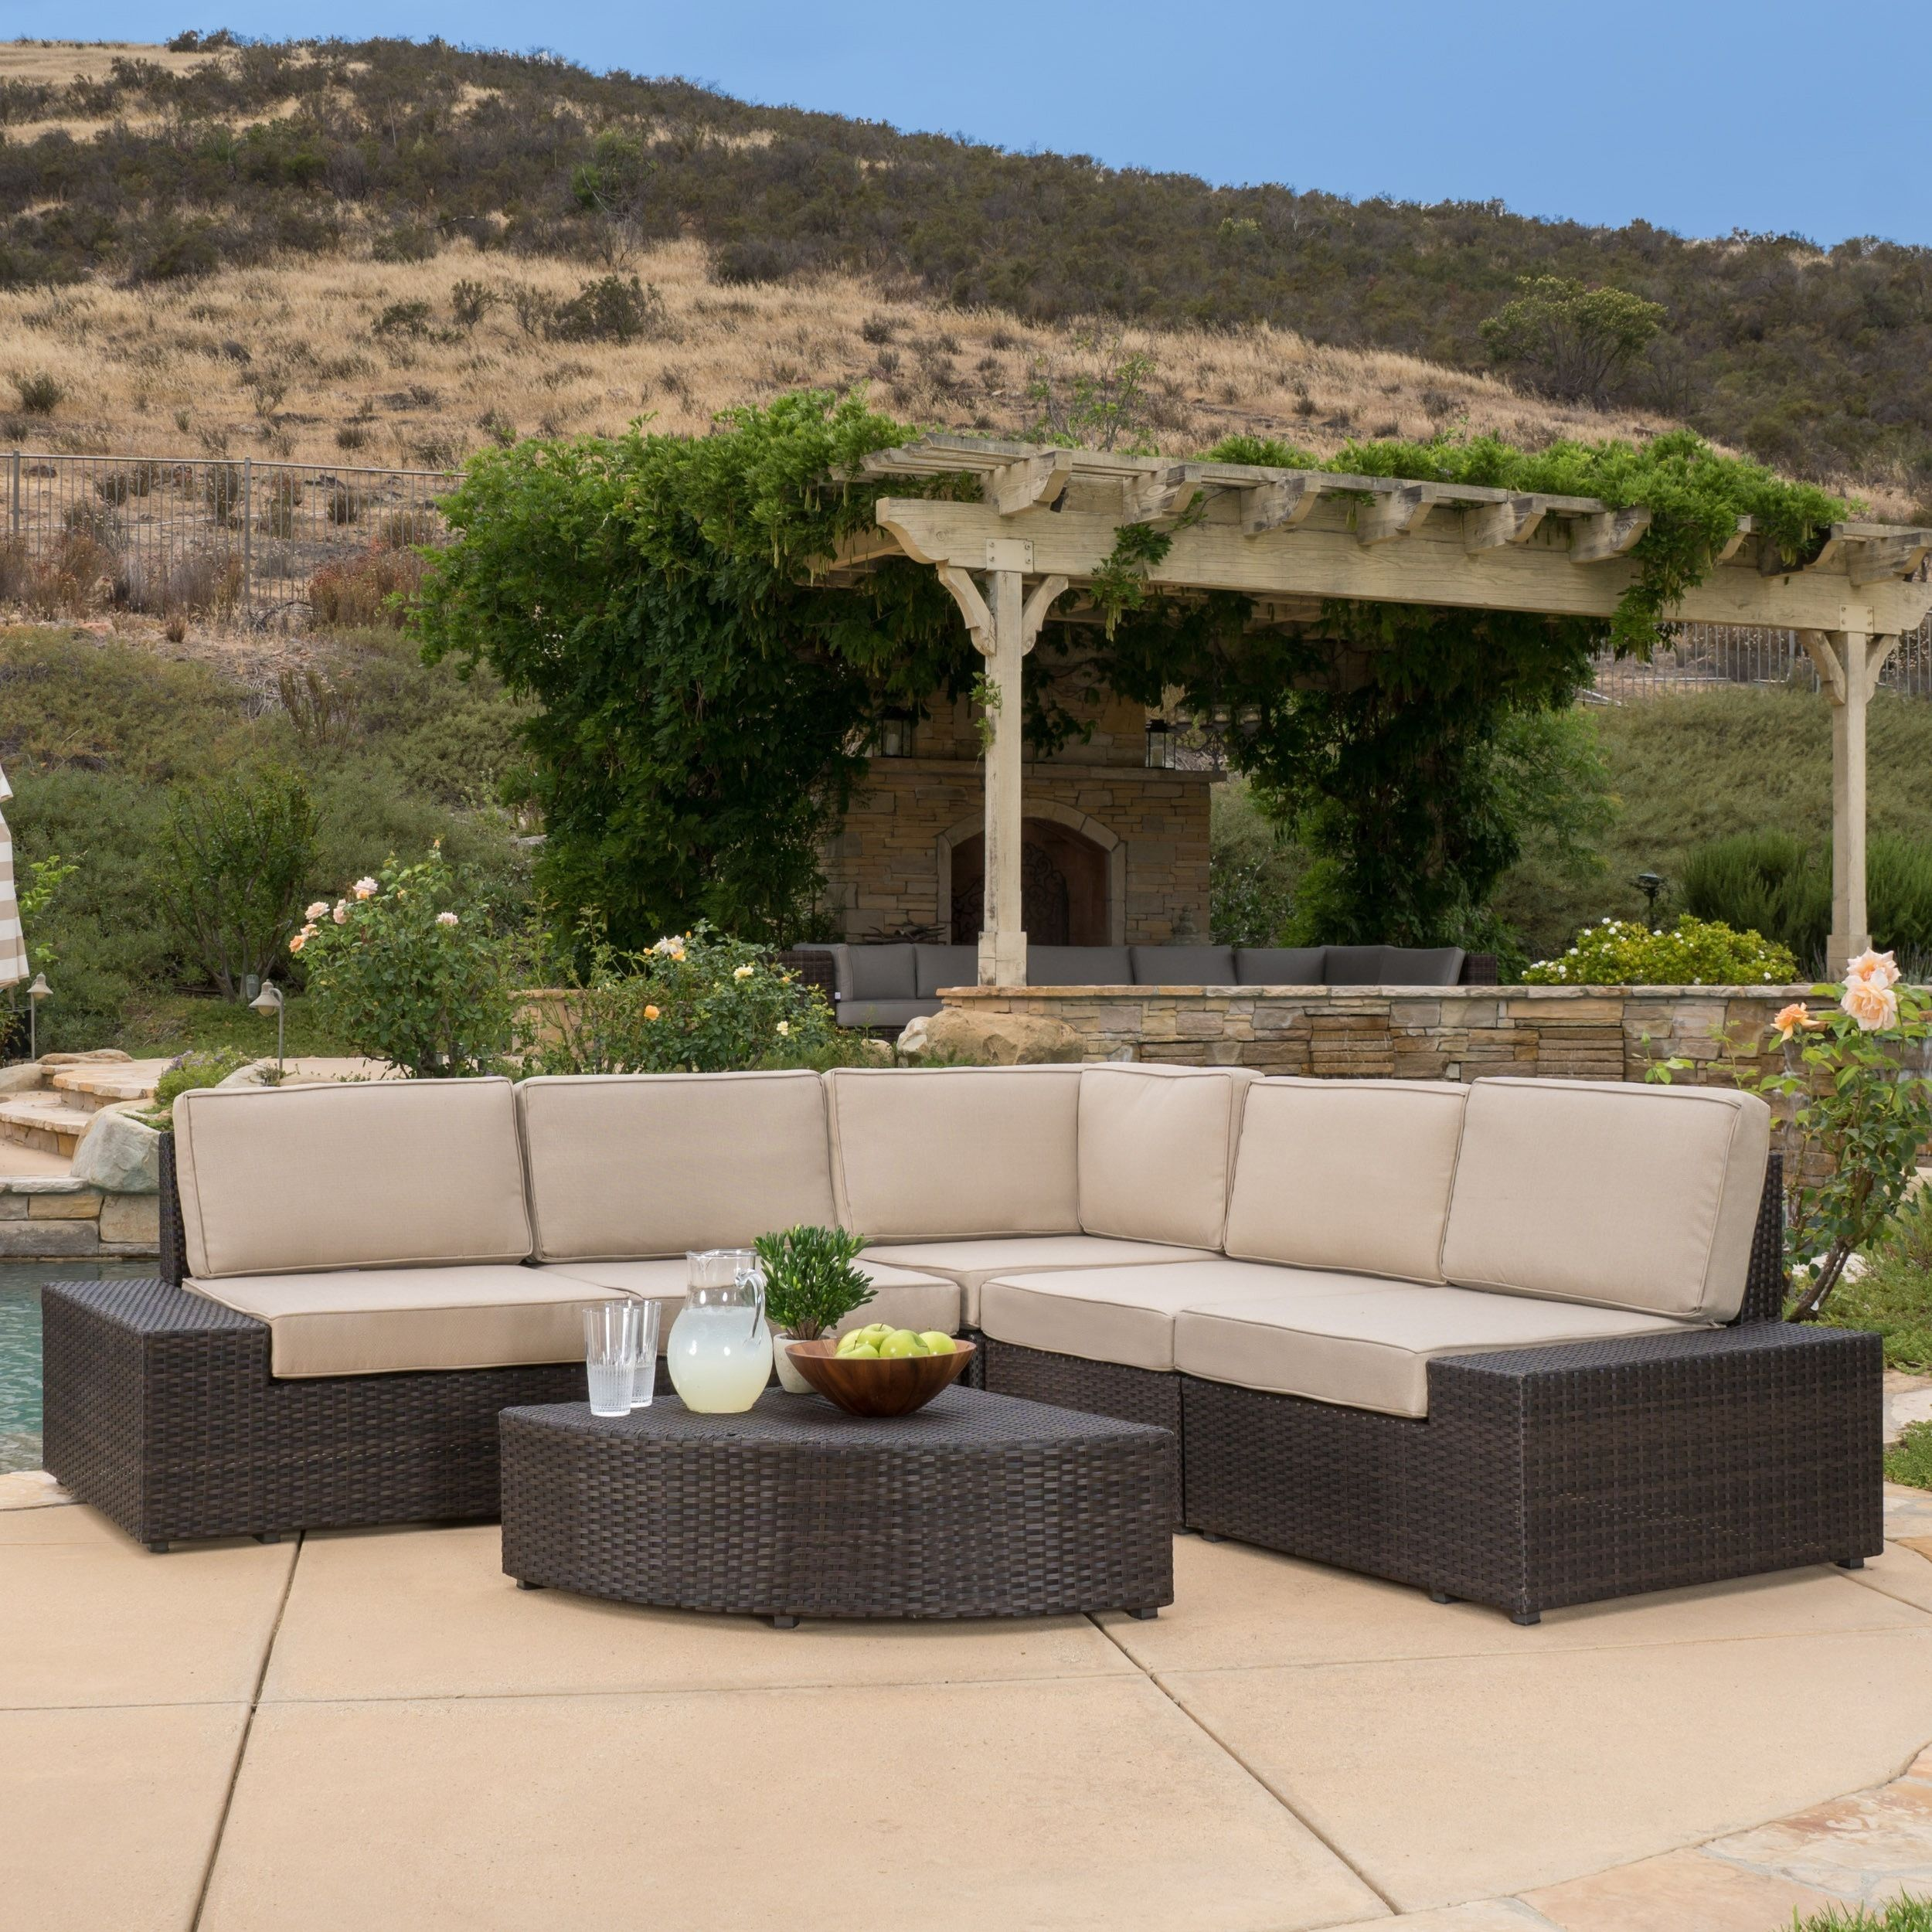 Outdoor Furniture Las Vegas Best Quality Furniture Check more at